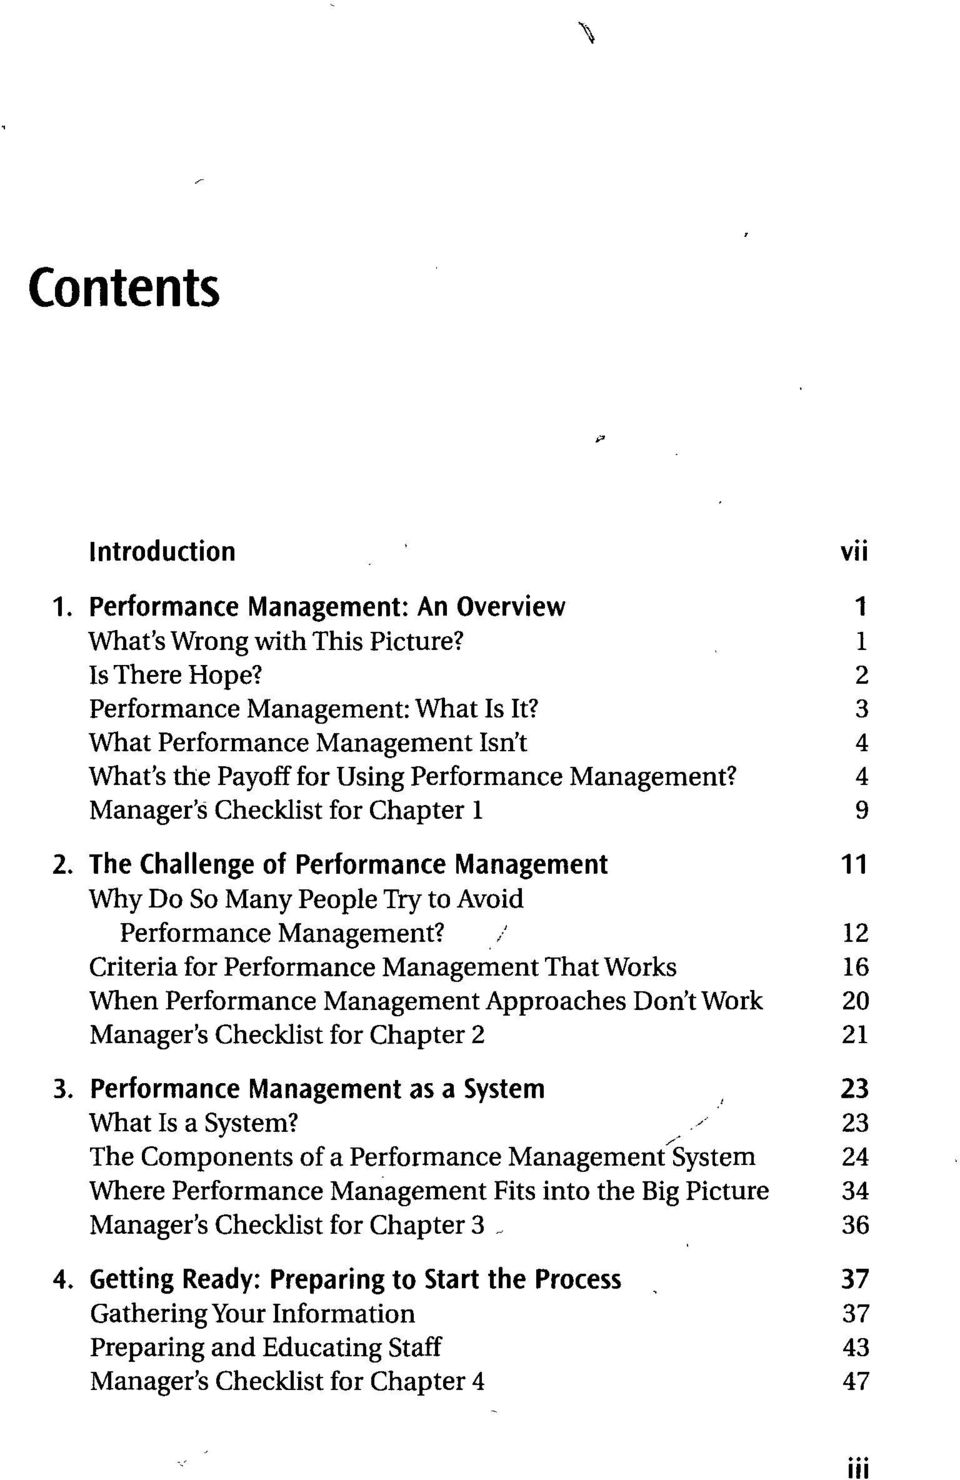 The Challenge of Performance Management 11 Why Do So Many People Try to Avoid Performance Management?